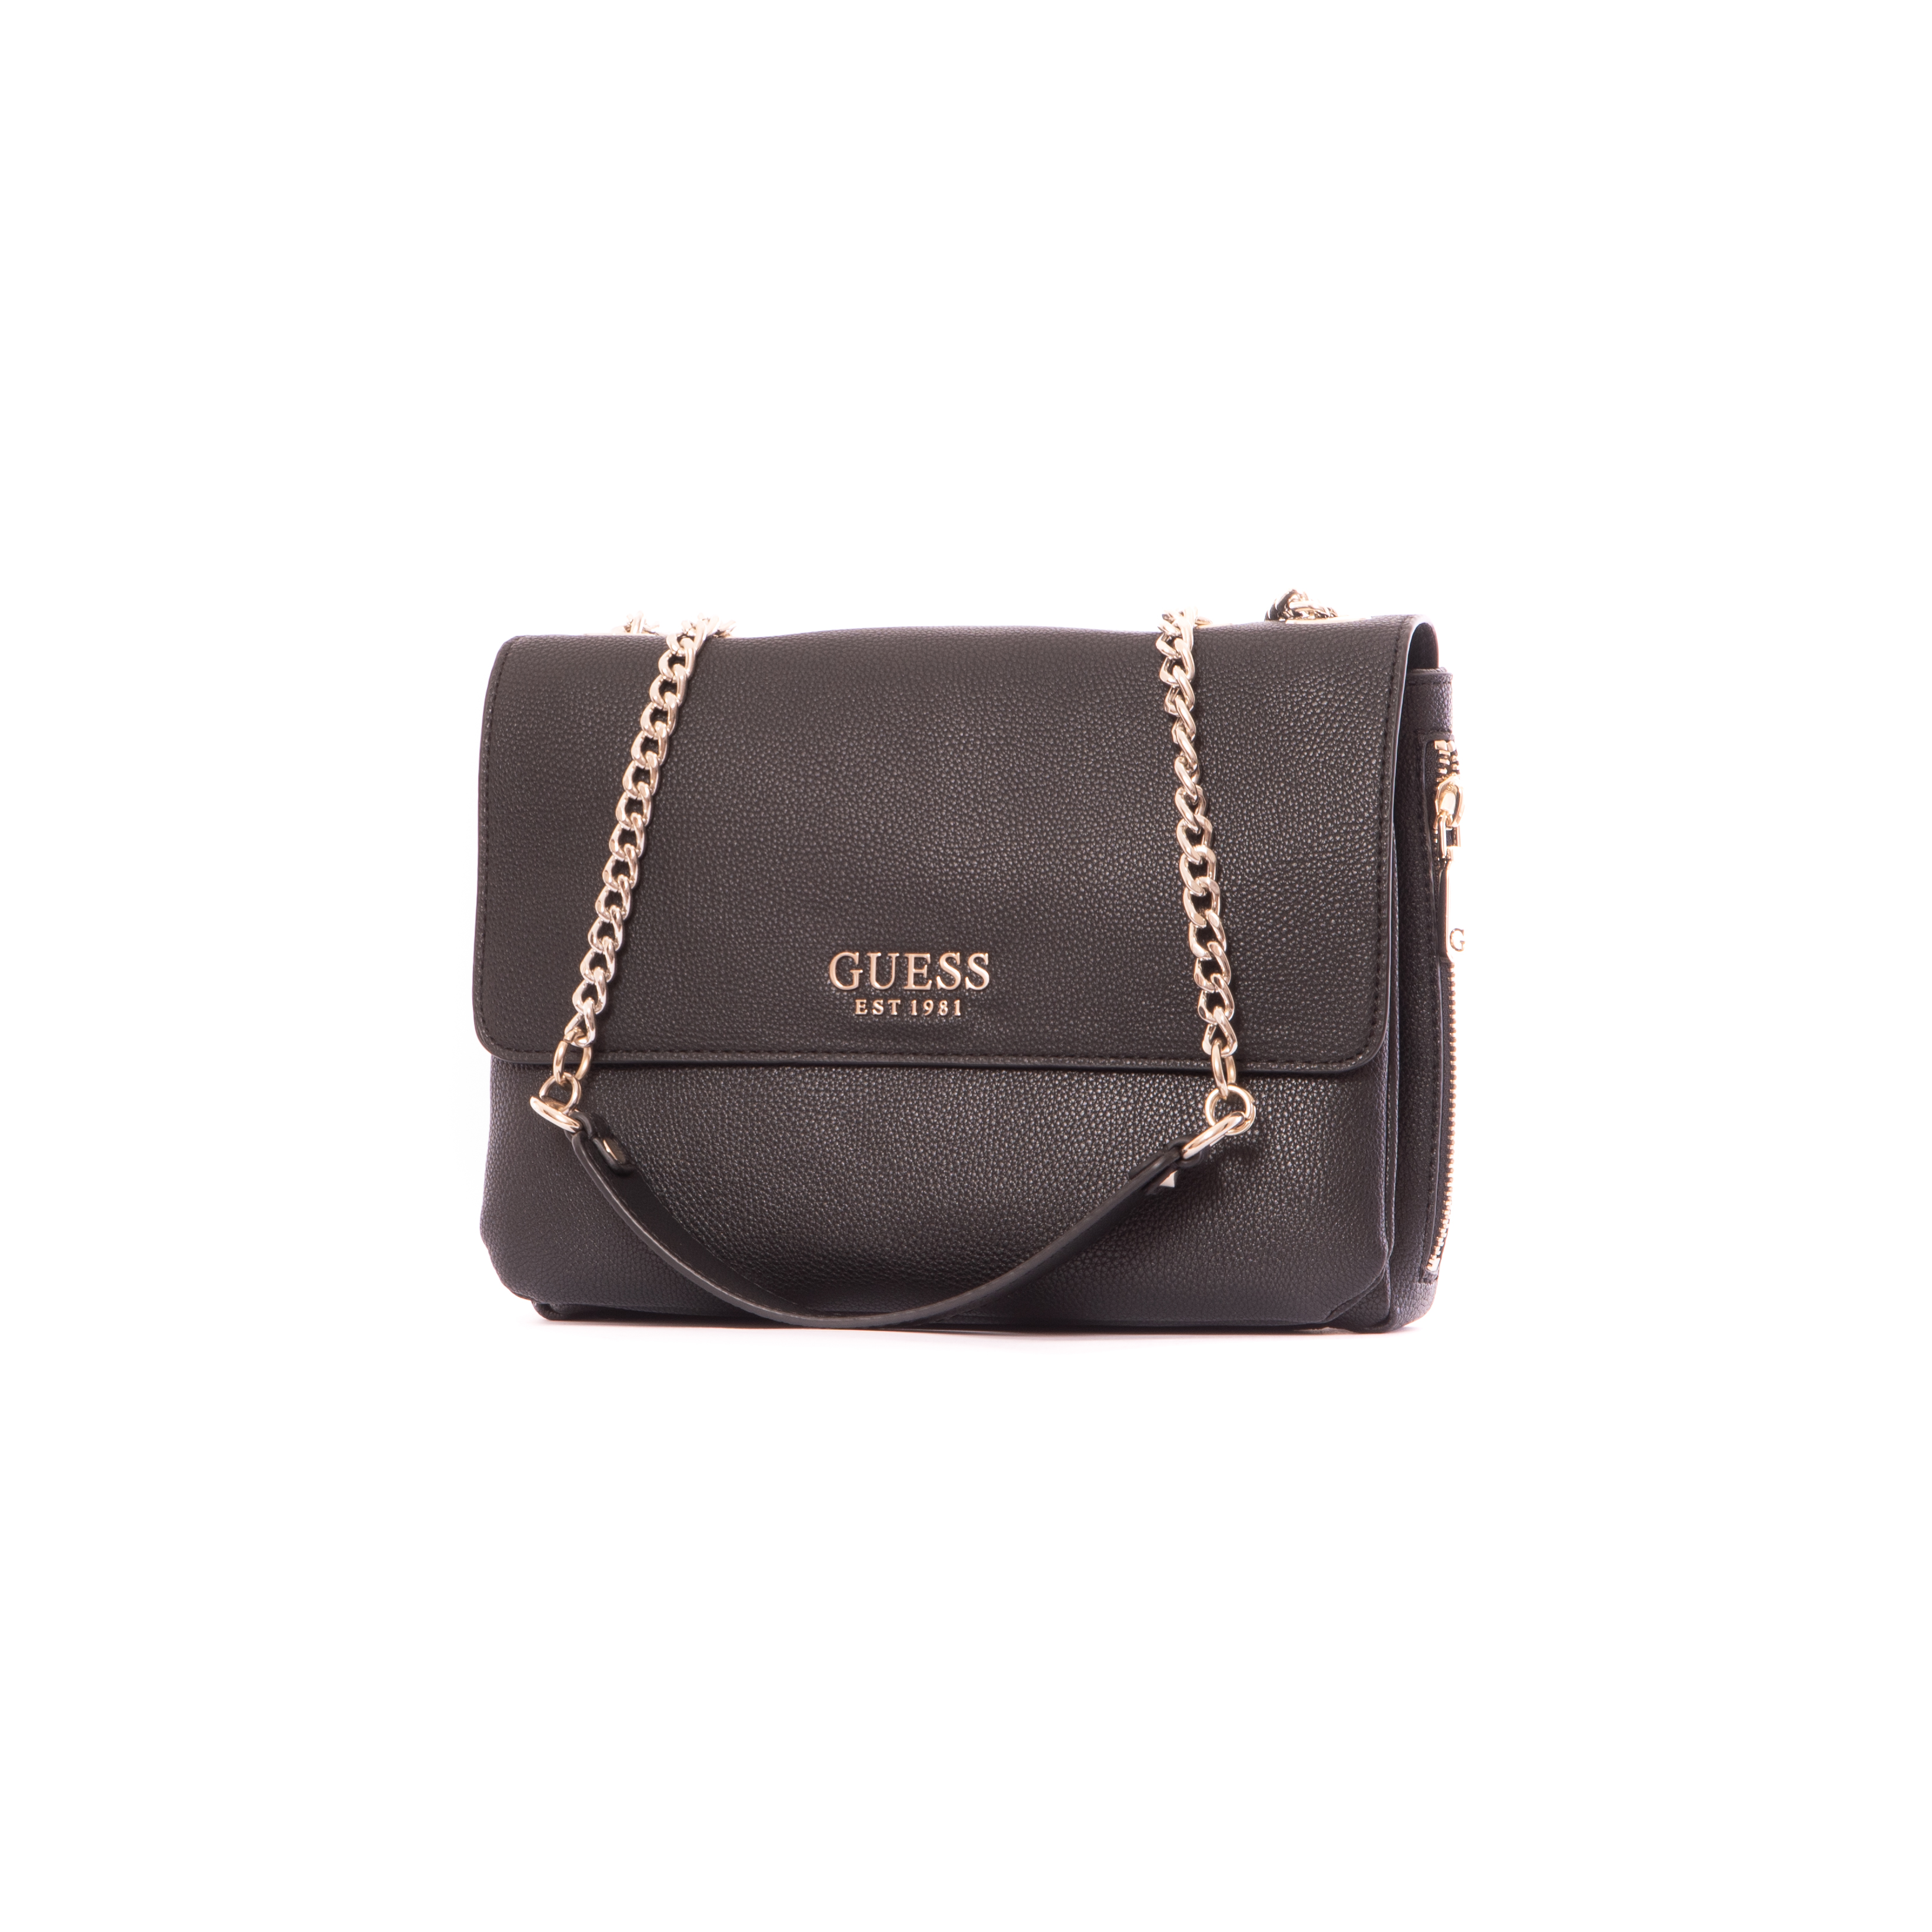 g chain convertible xbody flap